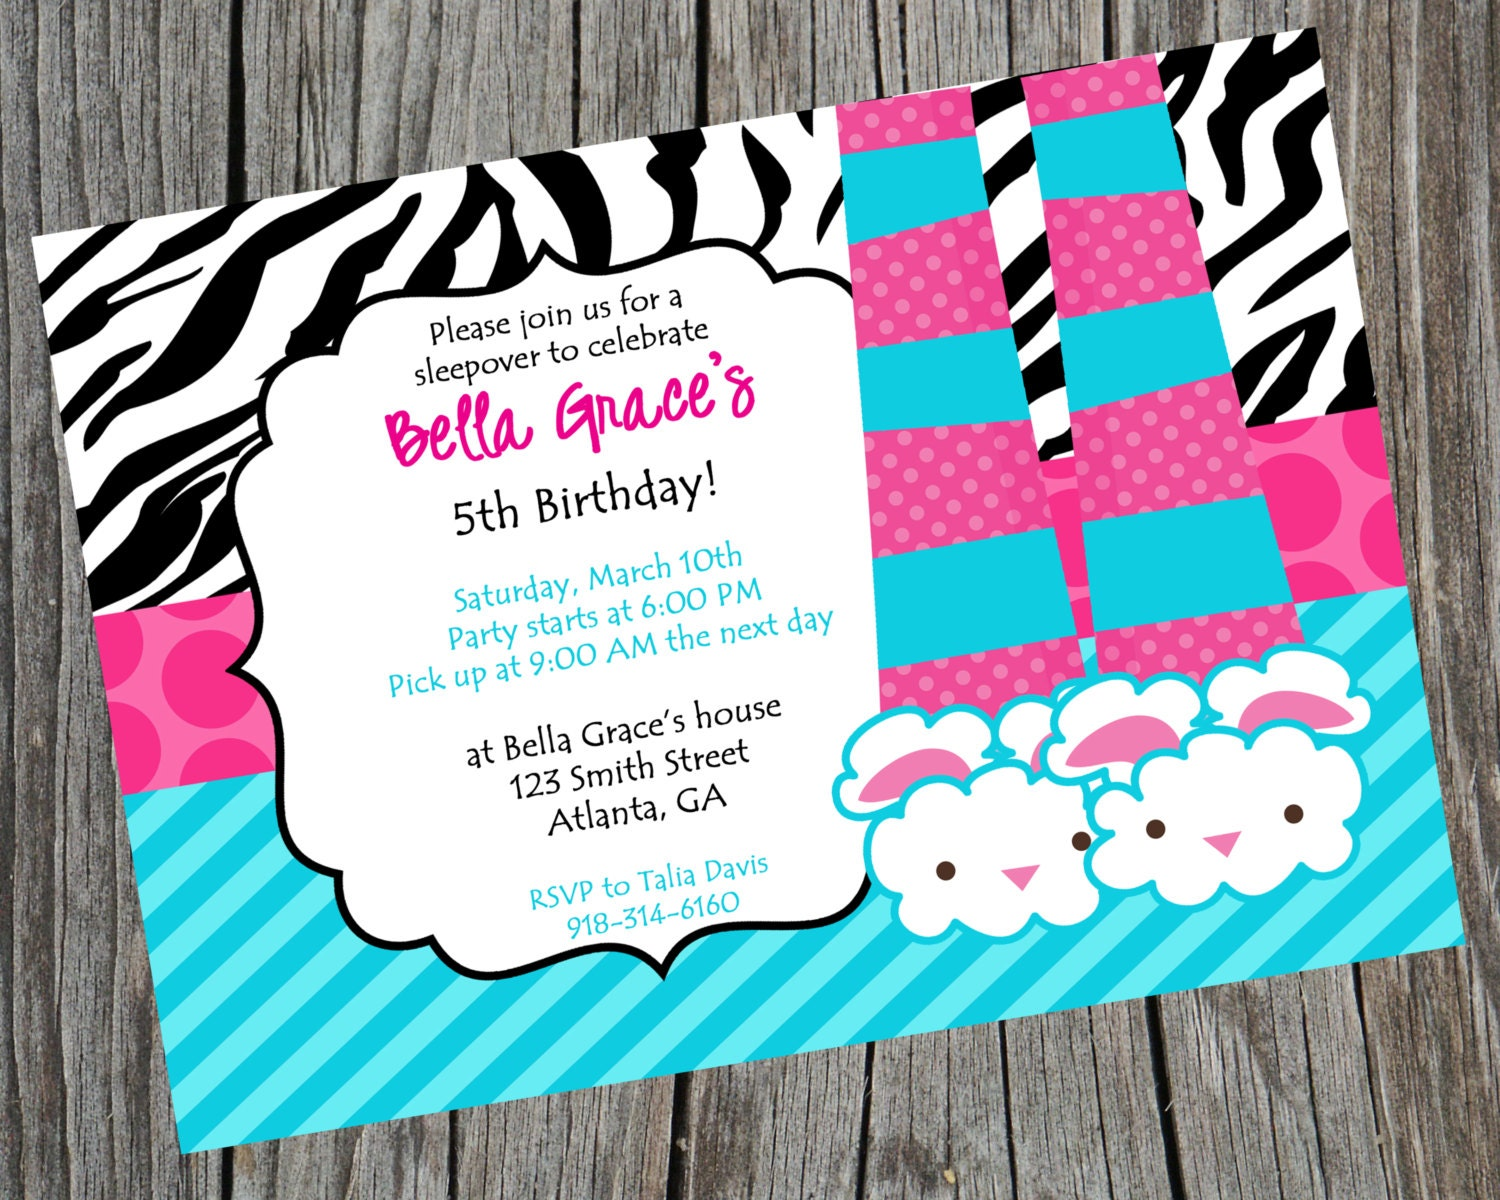 Sleepover Invitation Pajama Party Invite Sleepover Invite Etsy